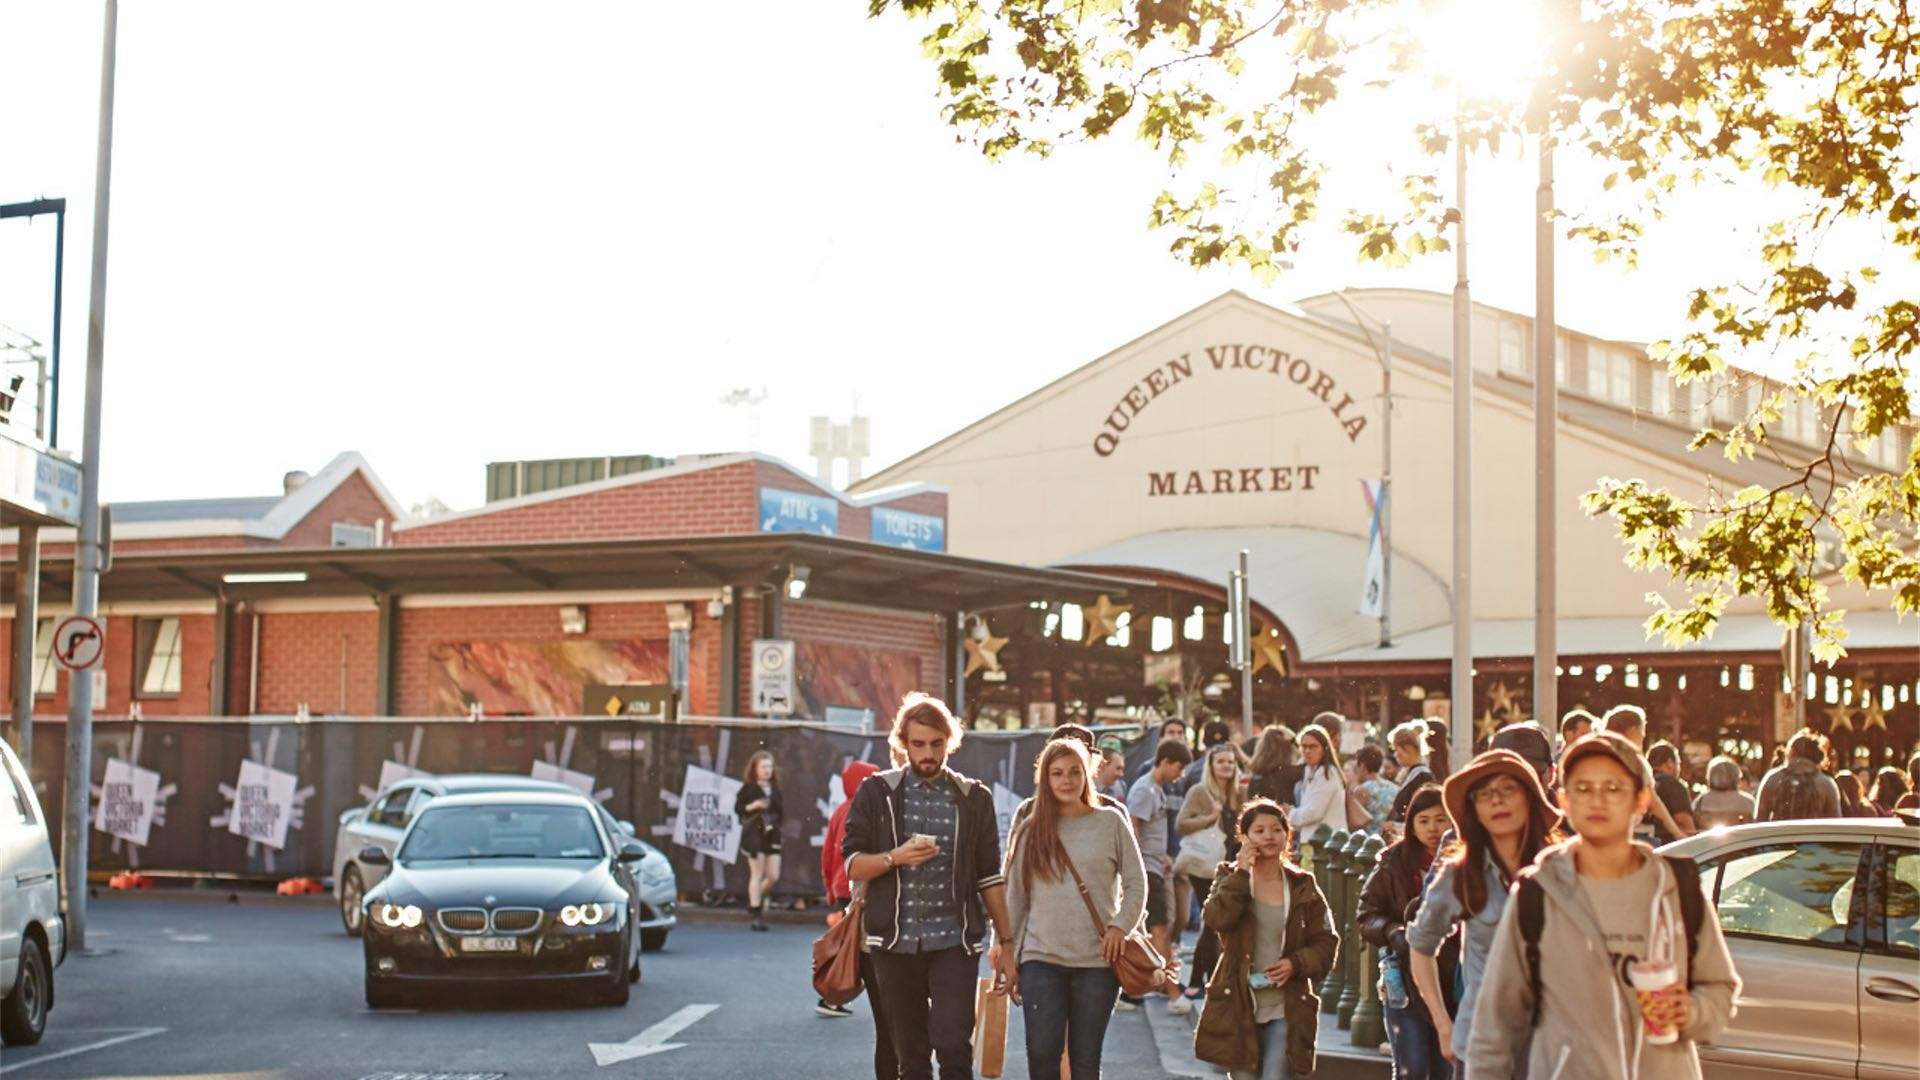 The Queen Victoria Market Has Been Granted National Heritage Listing